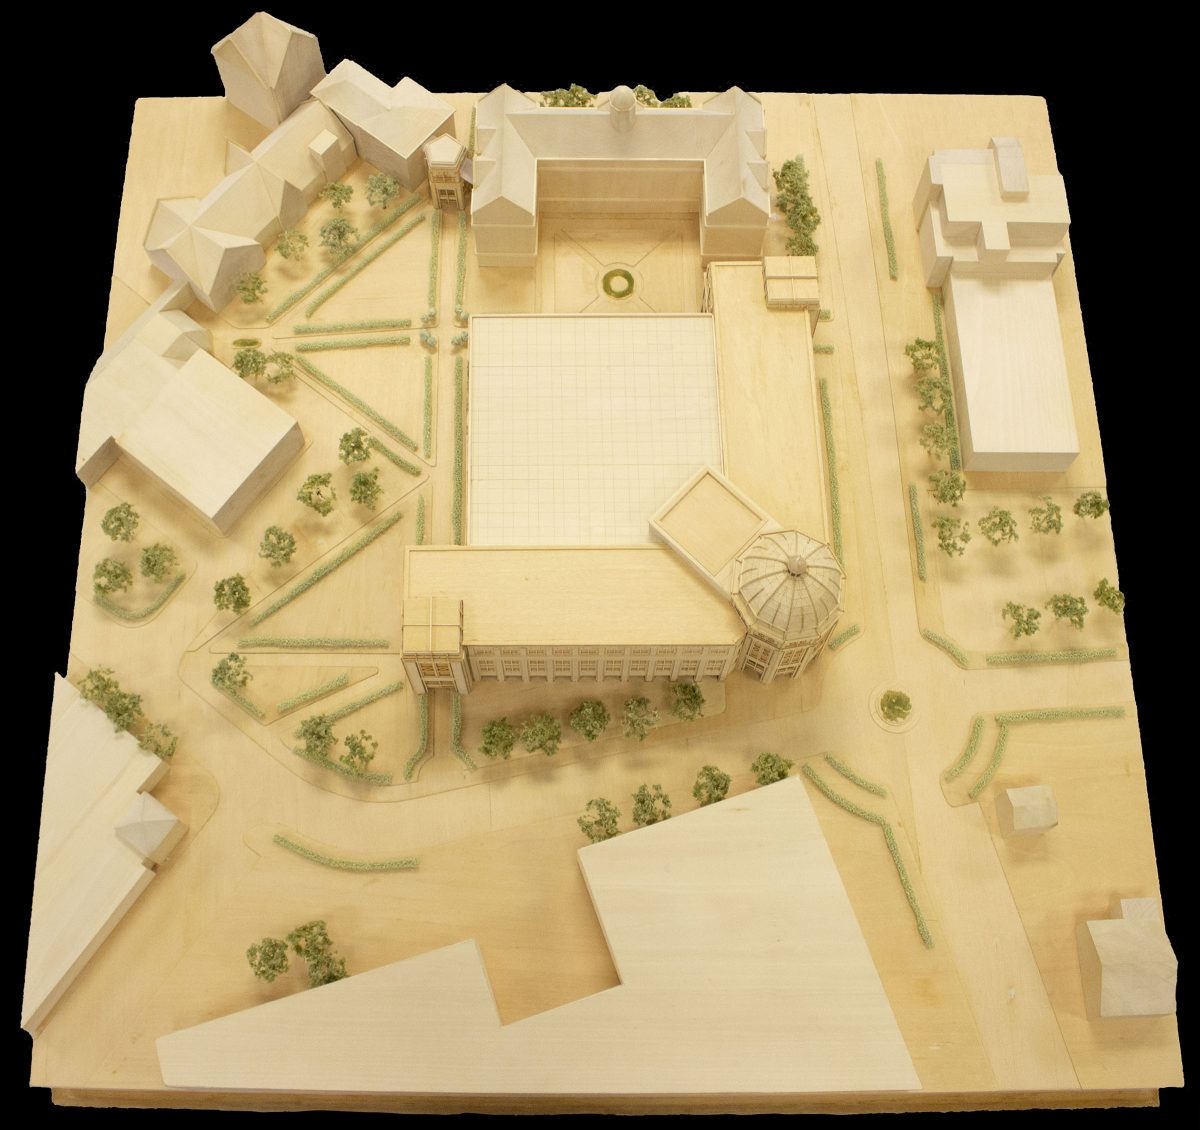 model of Walsh library